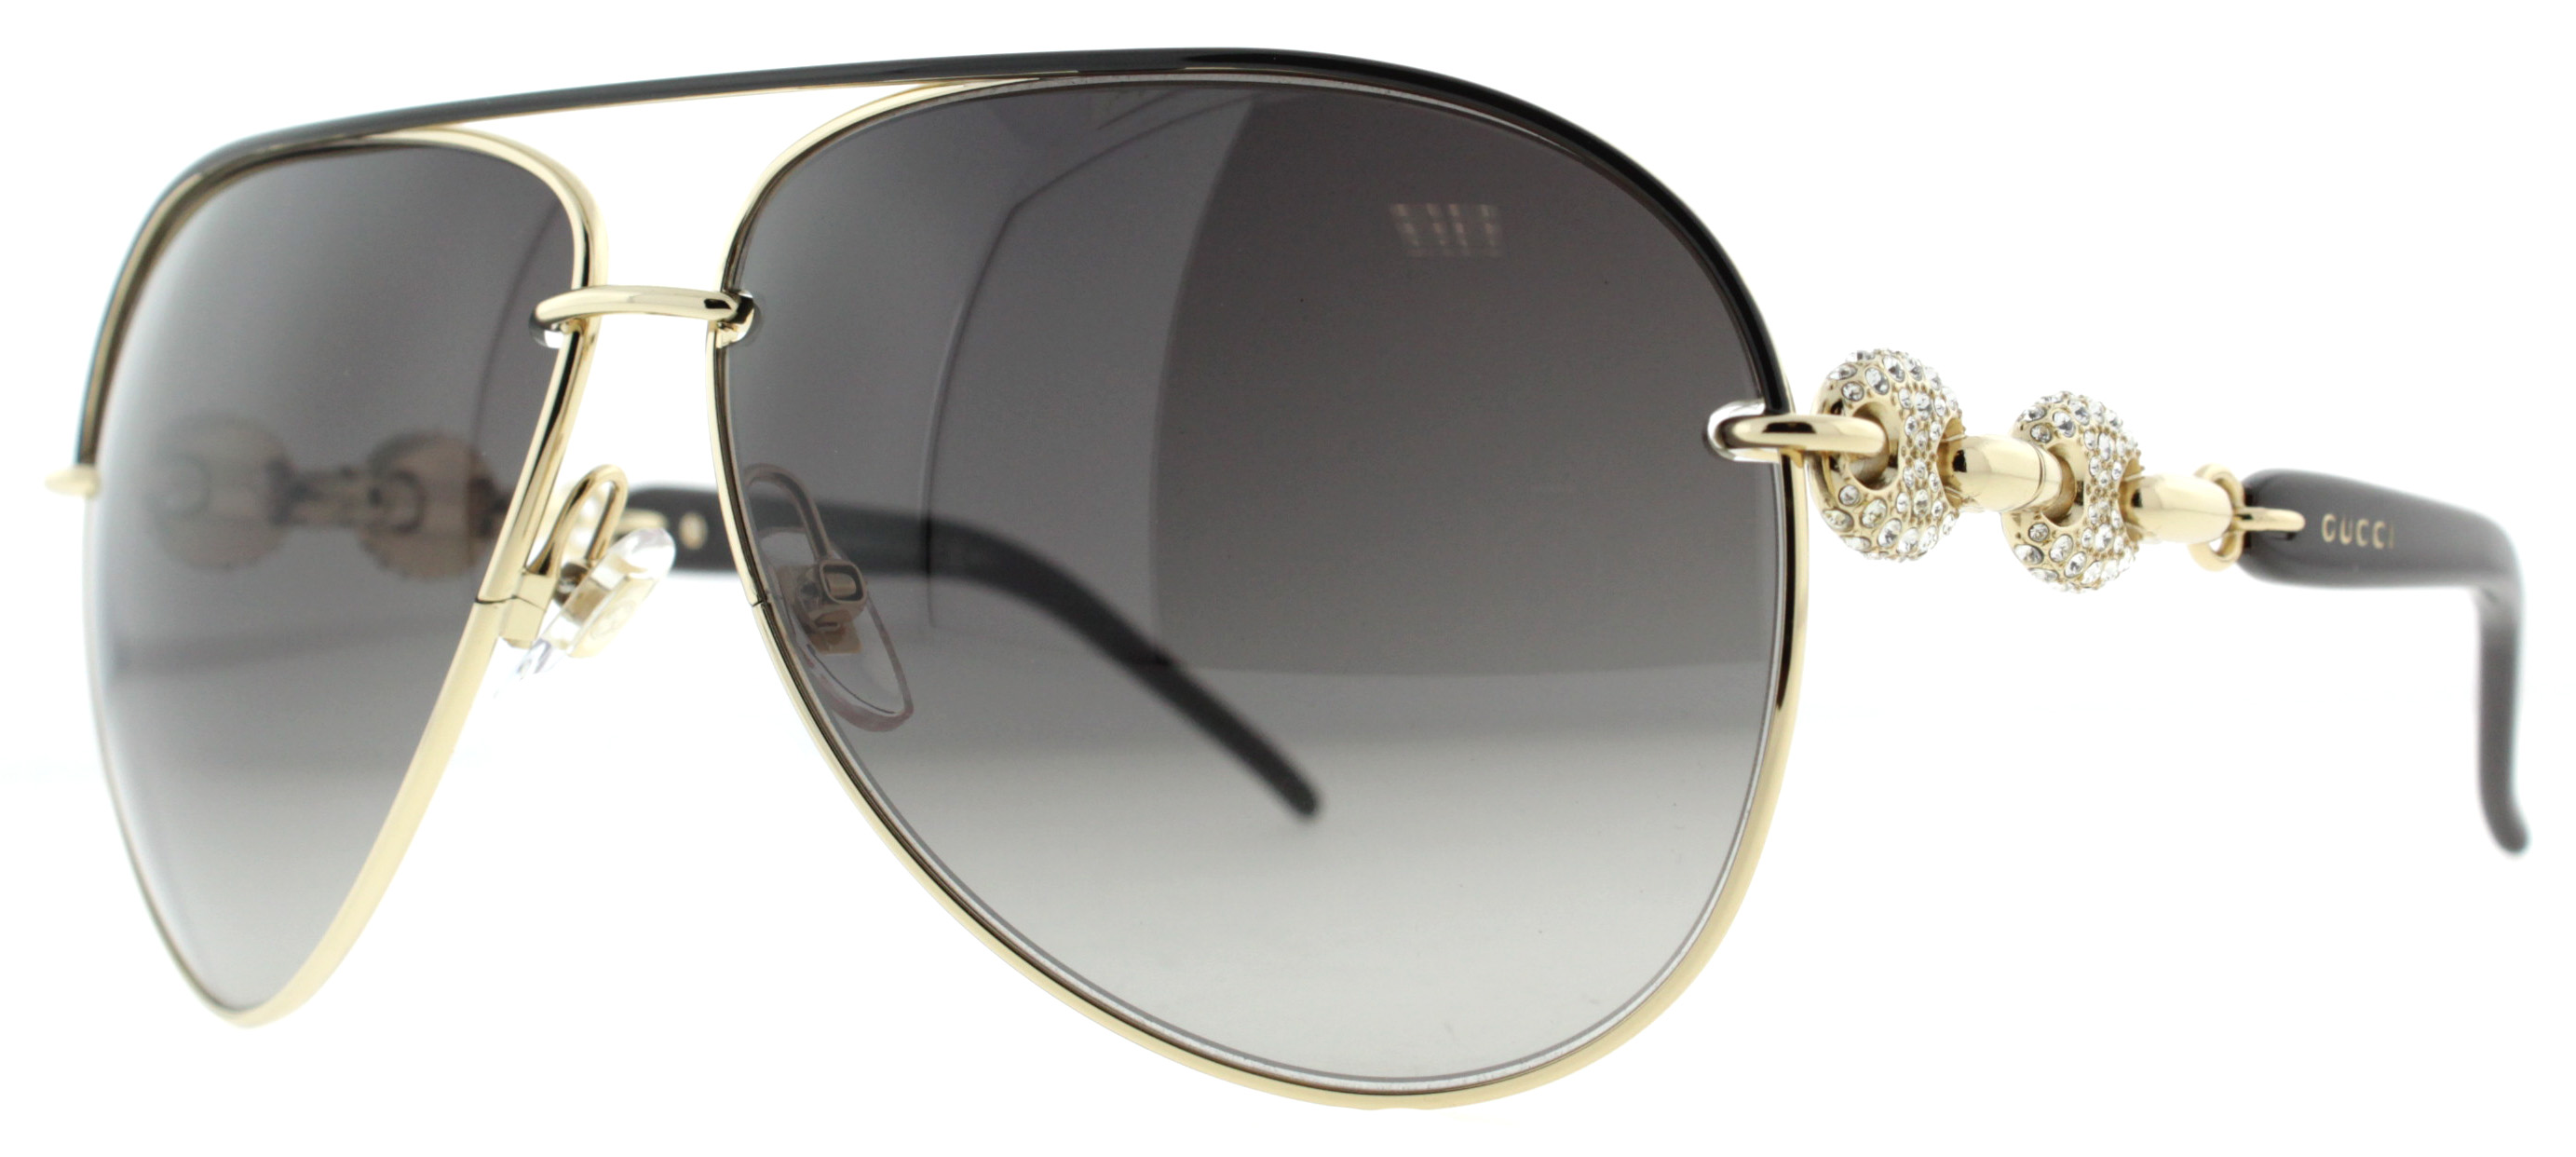 brown lens aviator sunglasses  gold/brown w/ crystals